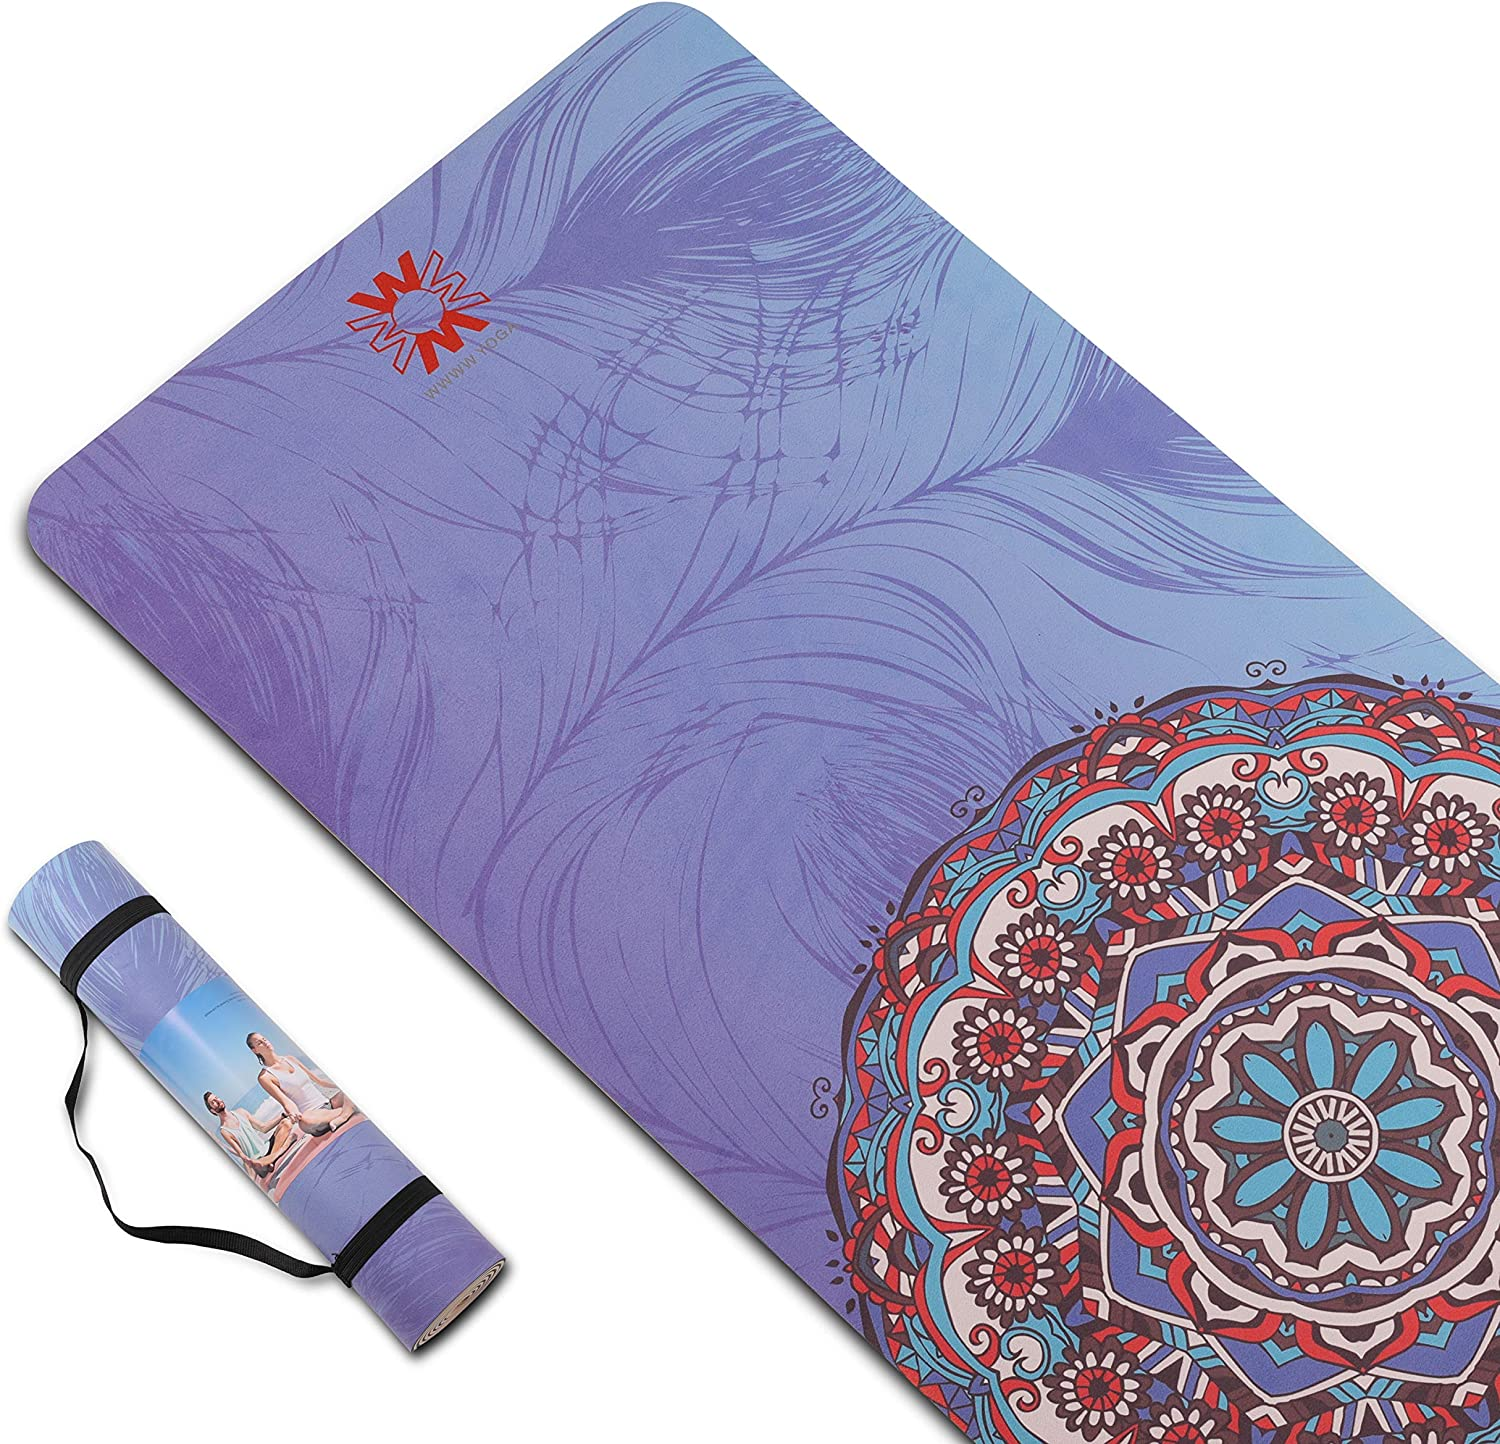 Yoga Mat Non Slip TPE Yoga Mats for Women and Men Thick Workout Mat with Bags and Carriers,Thick Exercise Mats for Home 72x 24 Thickness 1//4 or 1//3 for Yoga Pilates and Floor Exercises